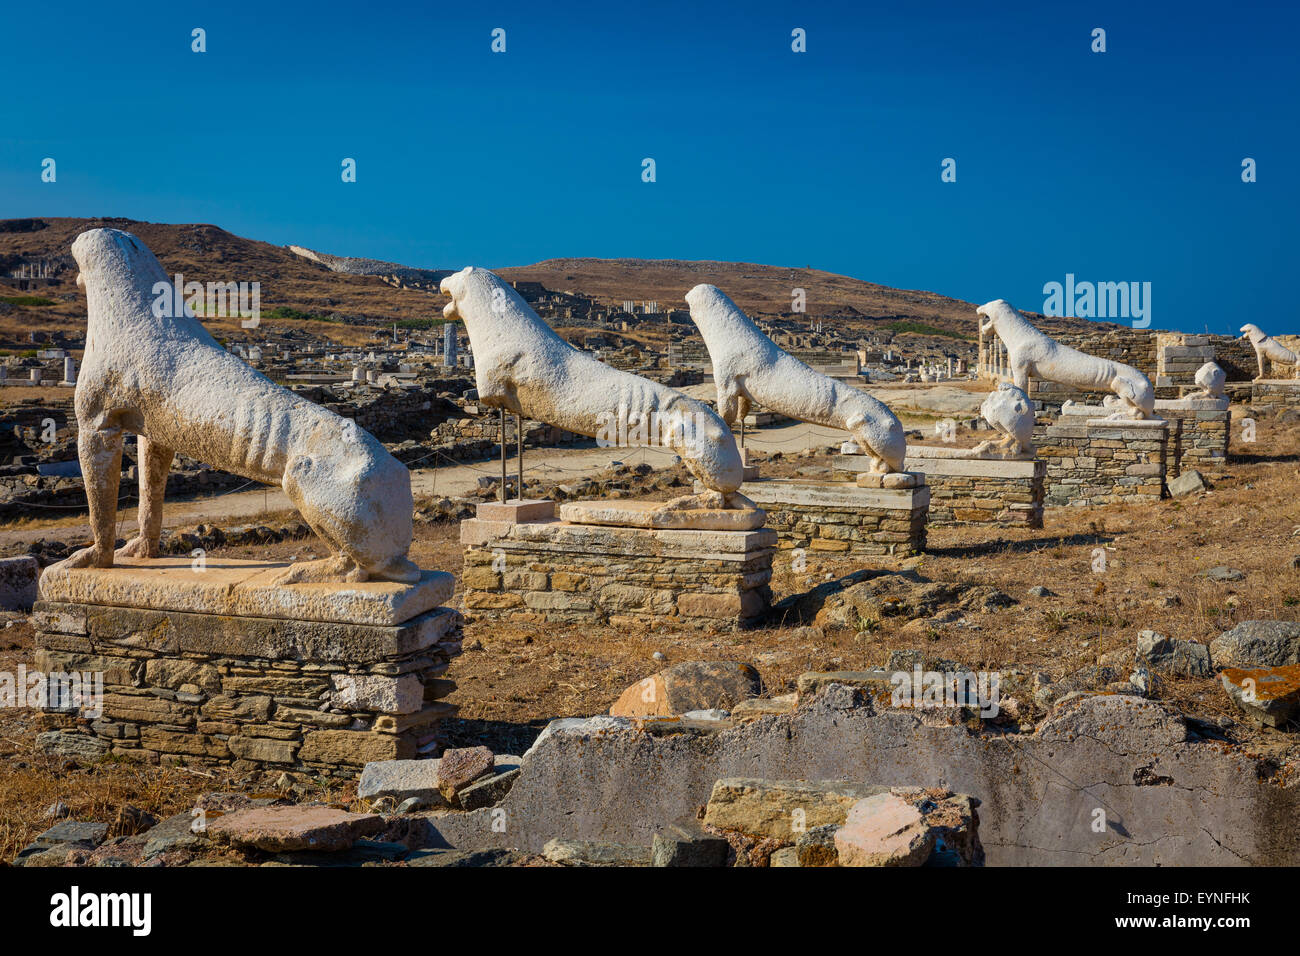 The island of Delos, near Mykonos, near the centre of the Cyclades archipelago, is one of the most important mythological, - Stock Image